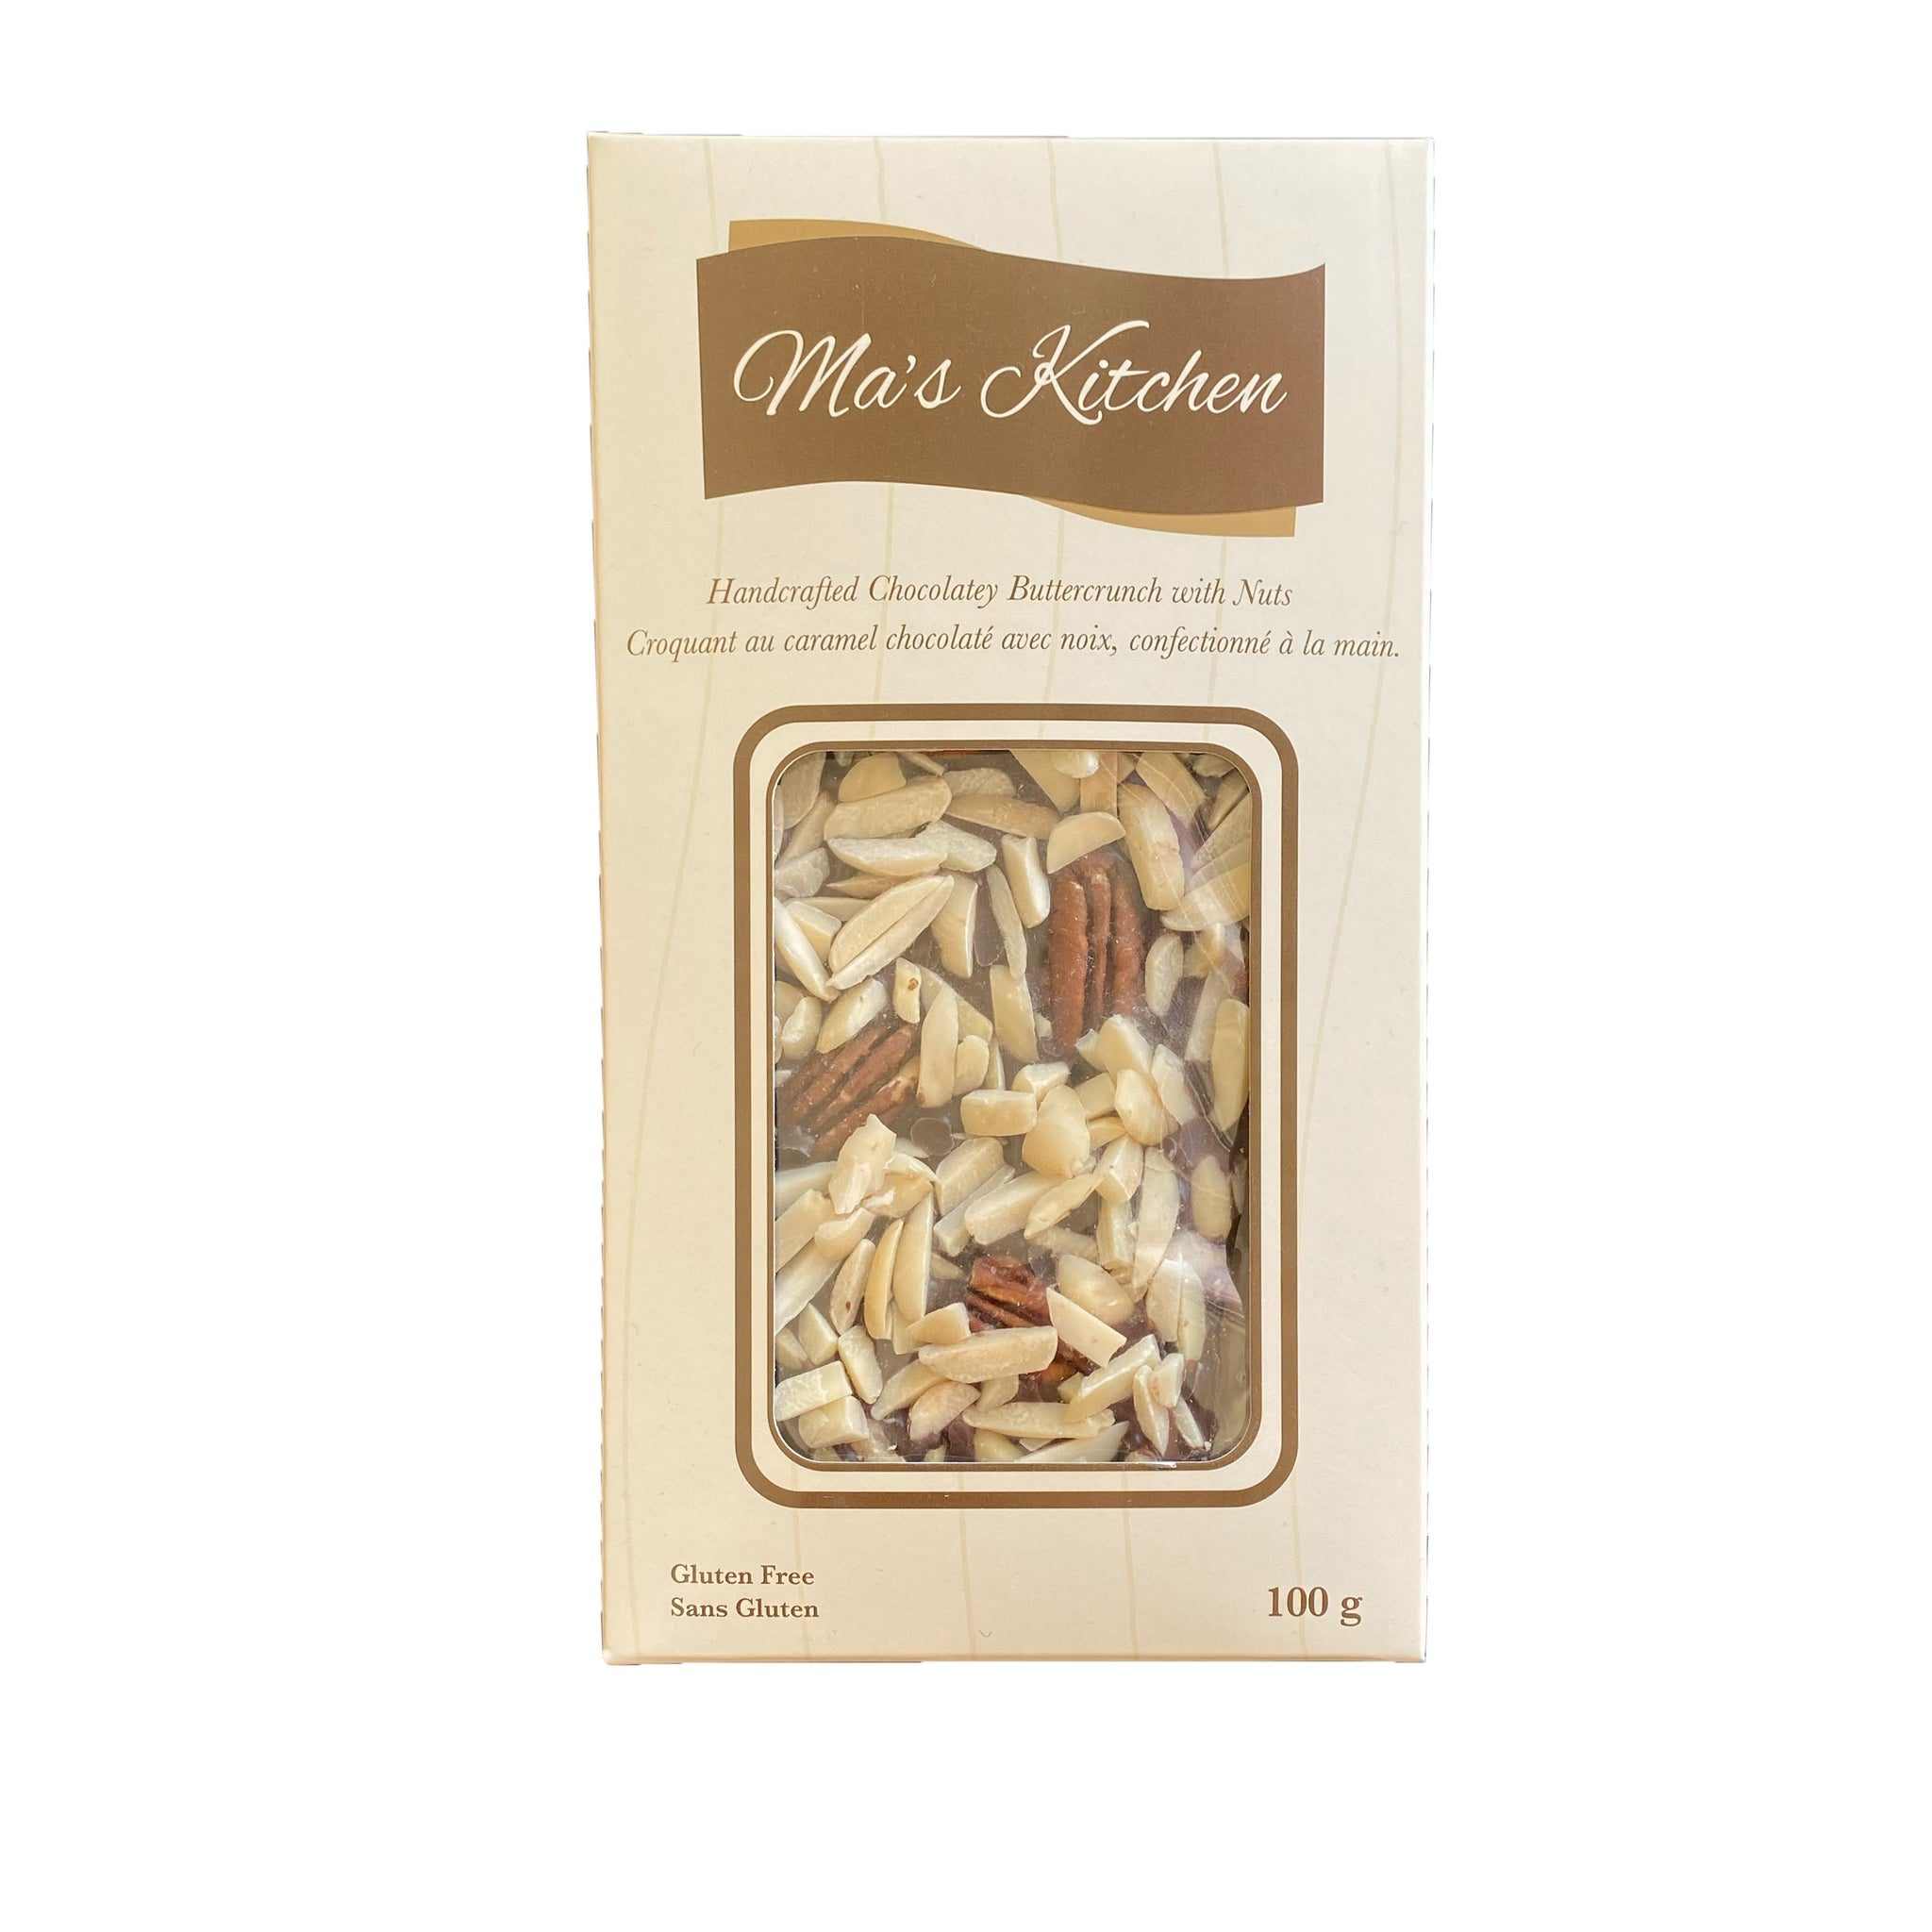 Ma's Kitchen Buttercrunch with Nuts - 100g